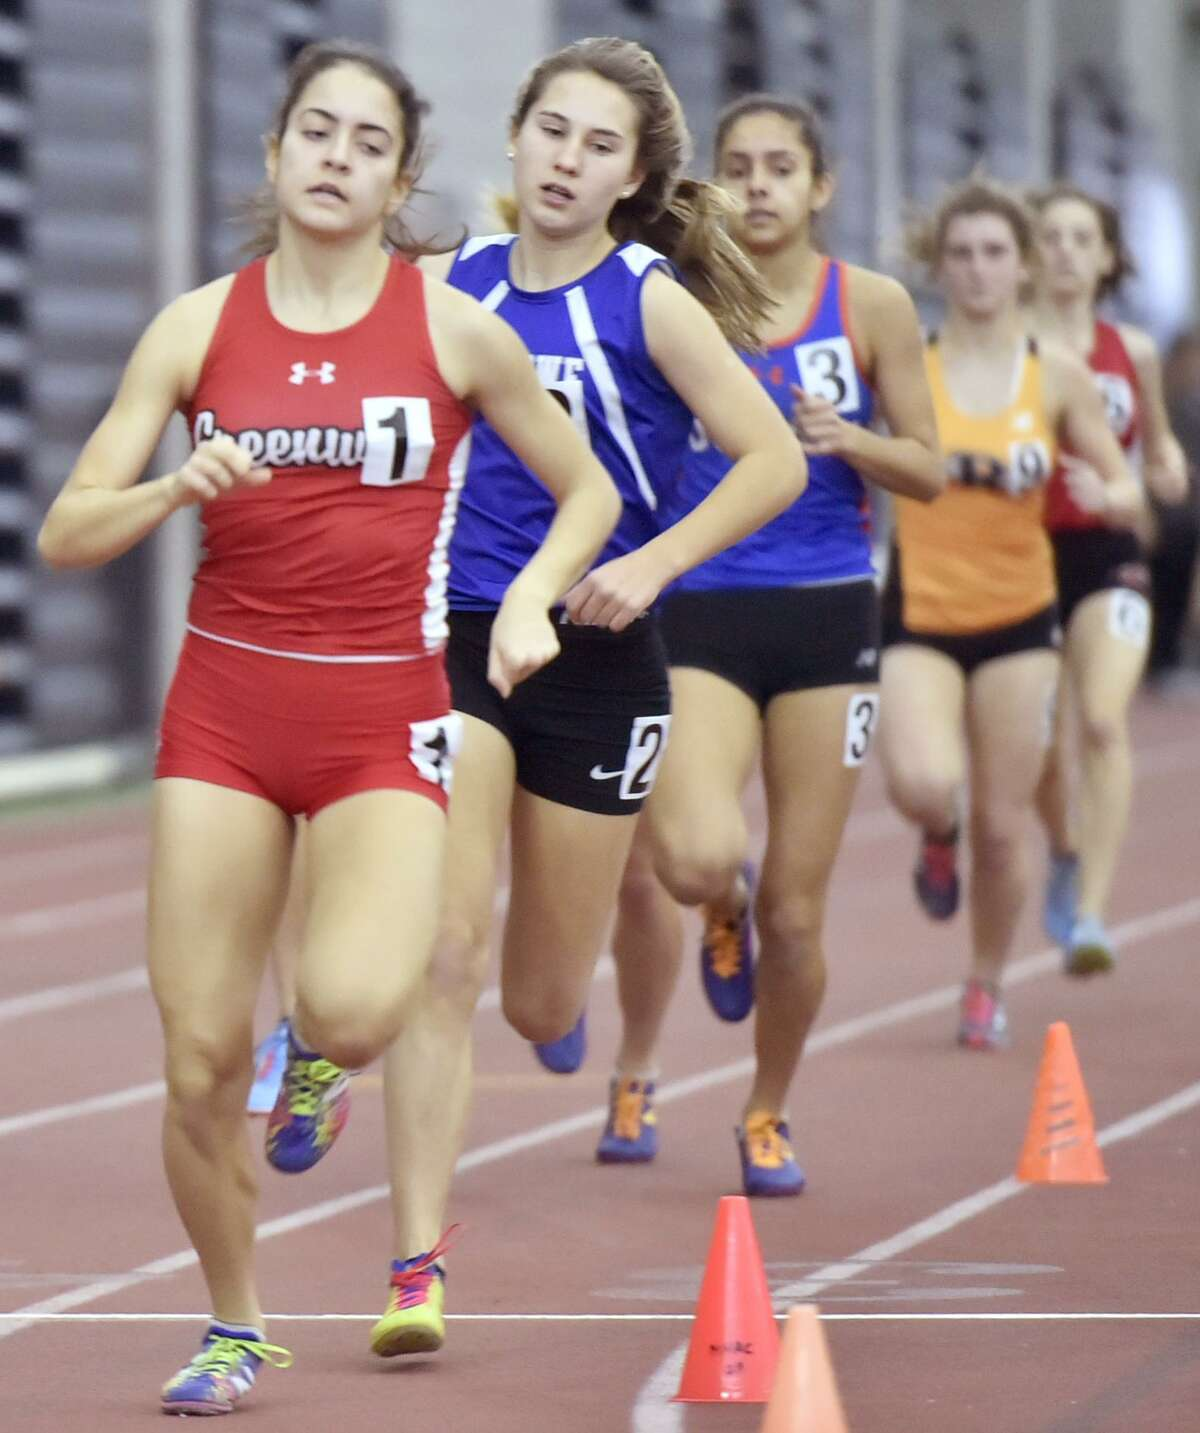 New Haven, Connecticut - Saturday, February 10, 2018: Girls 1000 meter run winner Emily Philippides of Greenwich H.S., left, runs ahead of eventual third place winner Alyssa Kraus of Fairfield-Ludlowe H.S. during the 2018 State Class LL Girls and Boys Indoor Track and Field Championship at the Floyd Little Athletic Center in New Haven .